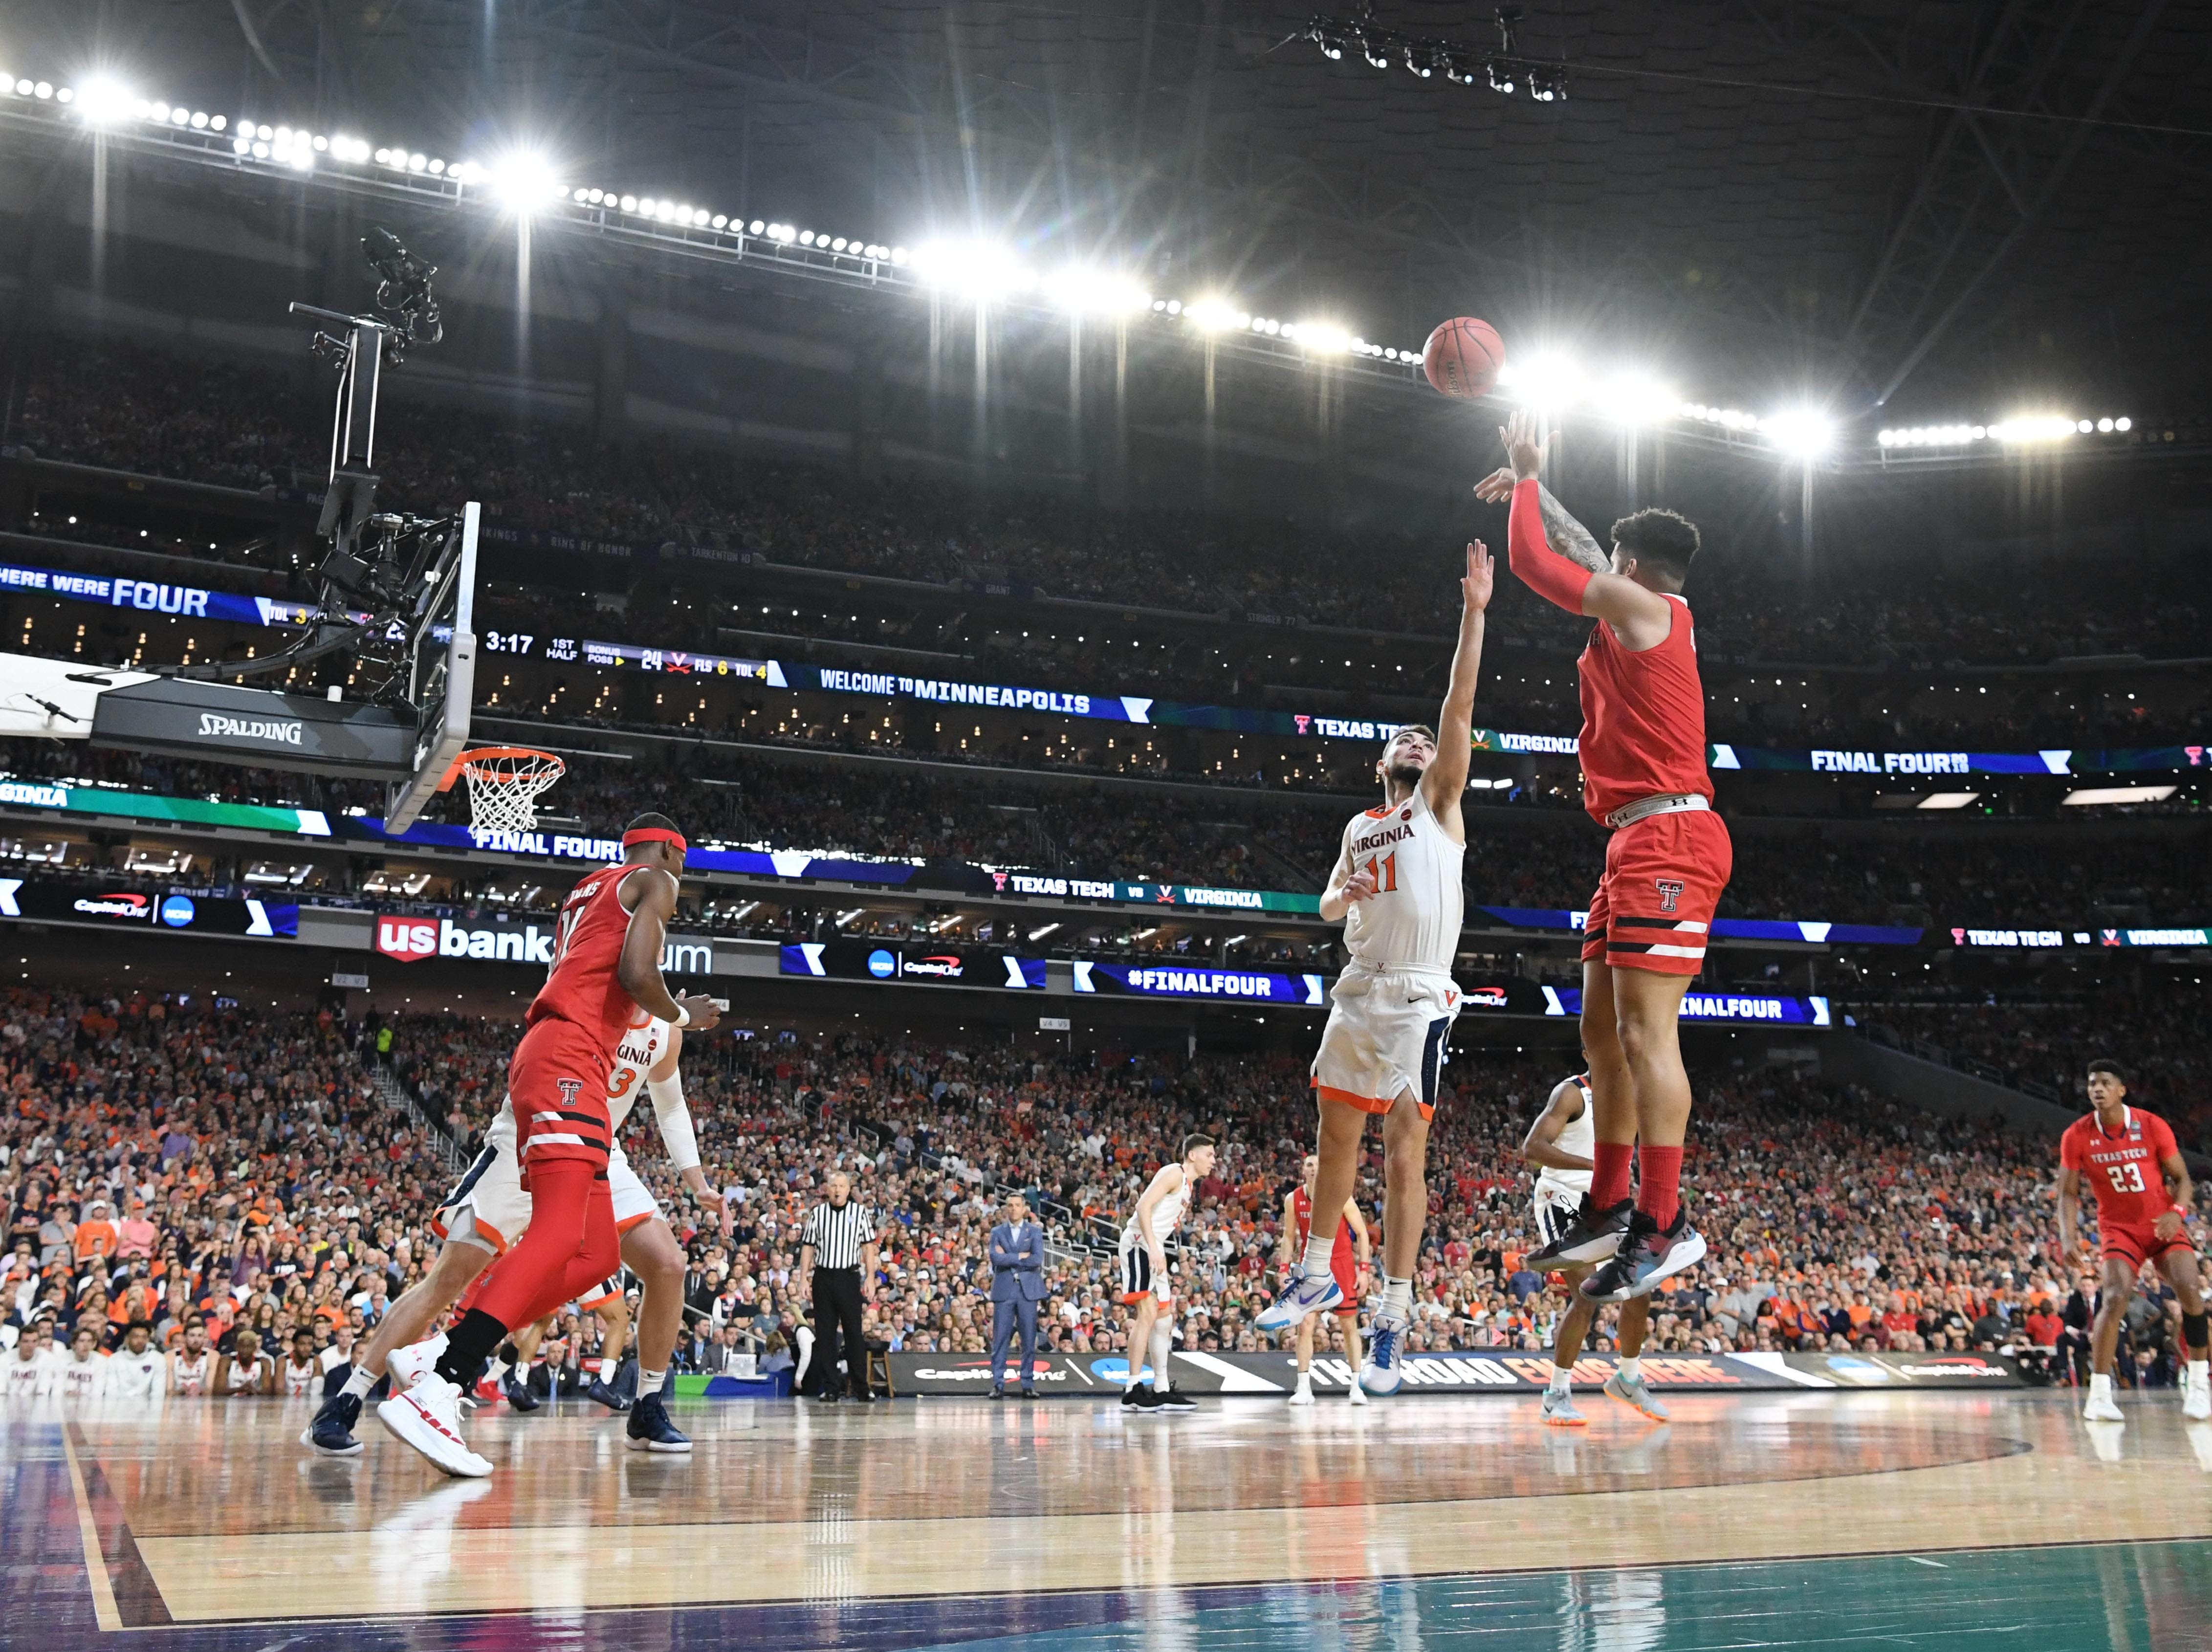 Apr 8, 2019; Minneapolis, MN, USA; Texas Tech Red Raiders guard Brandone Francis (1) shoots over Virginia Cavaliers guard Ty Jerome (11) in the first half in the championship game of the 2019 men's Final Four at US Bank Stadium. Mandatory Credit: Robert Deutsch-USA TODAY Sports